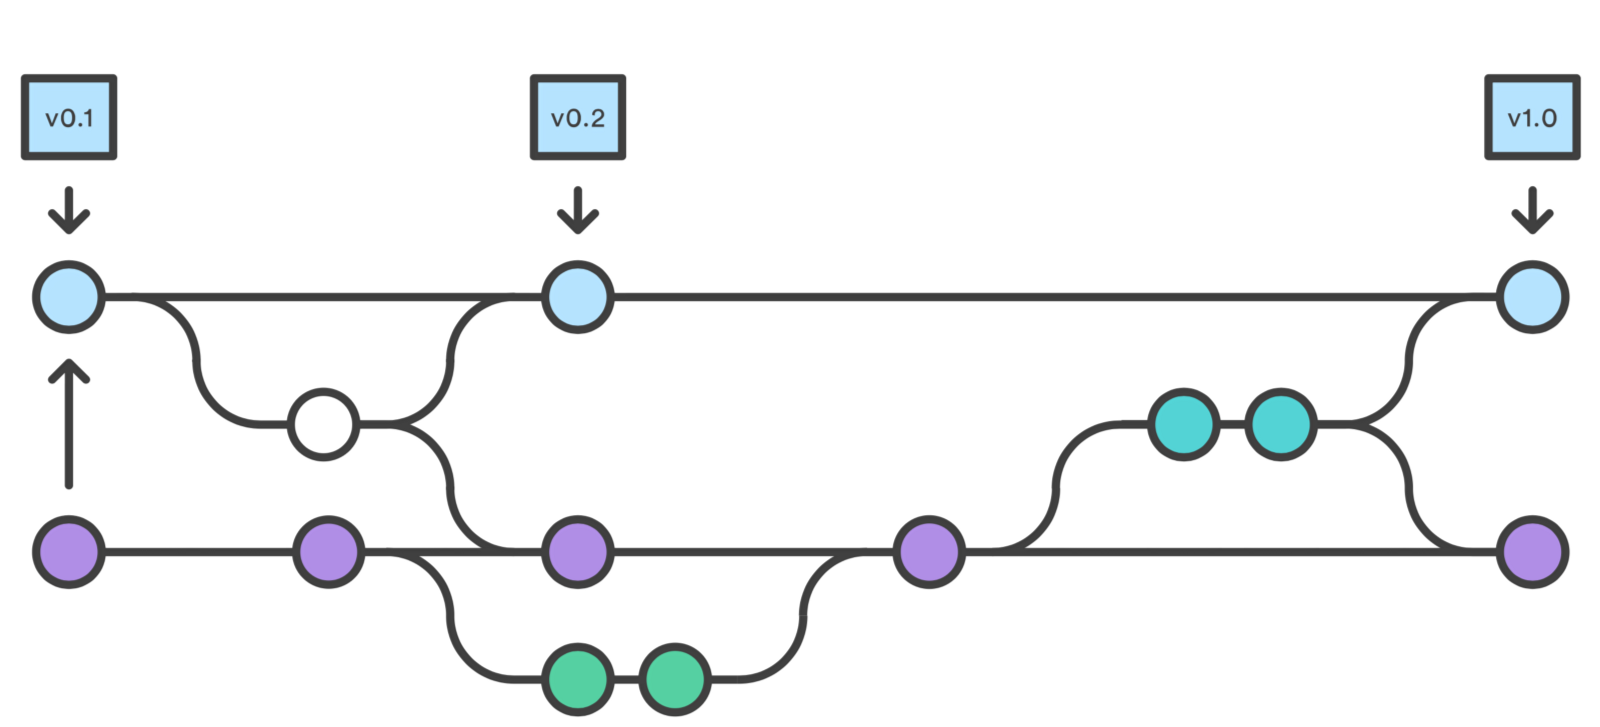 The key differences between git merge and git rebase.